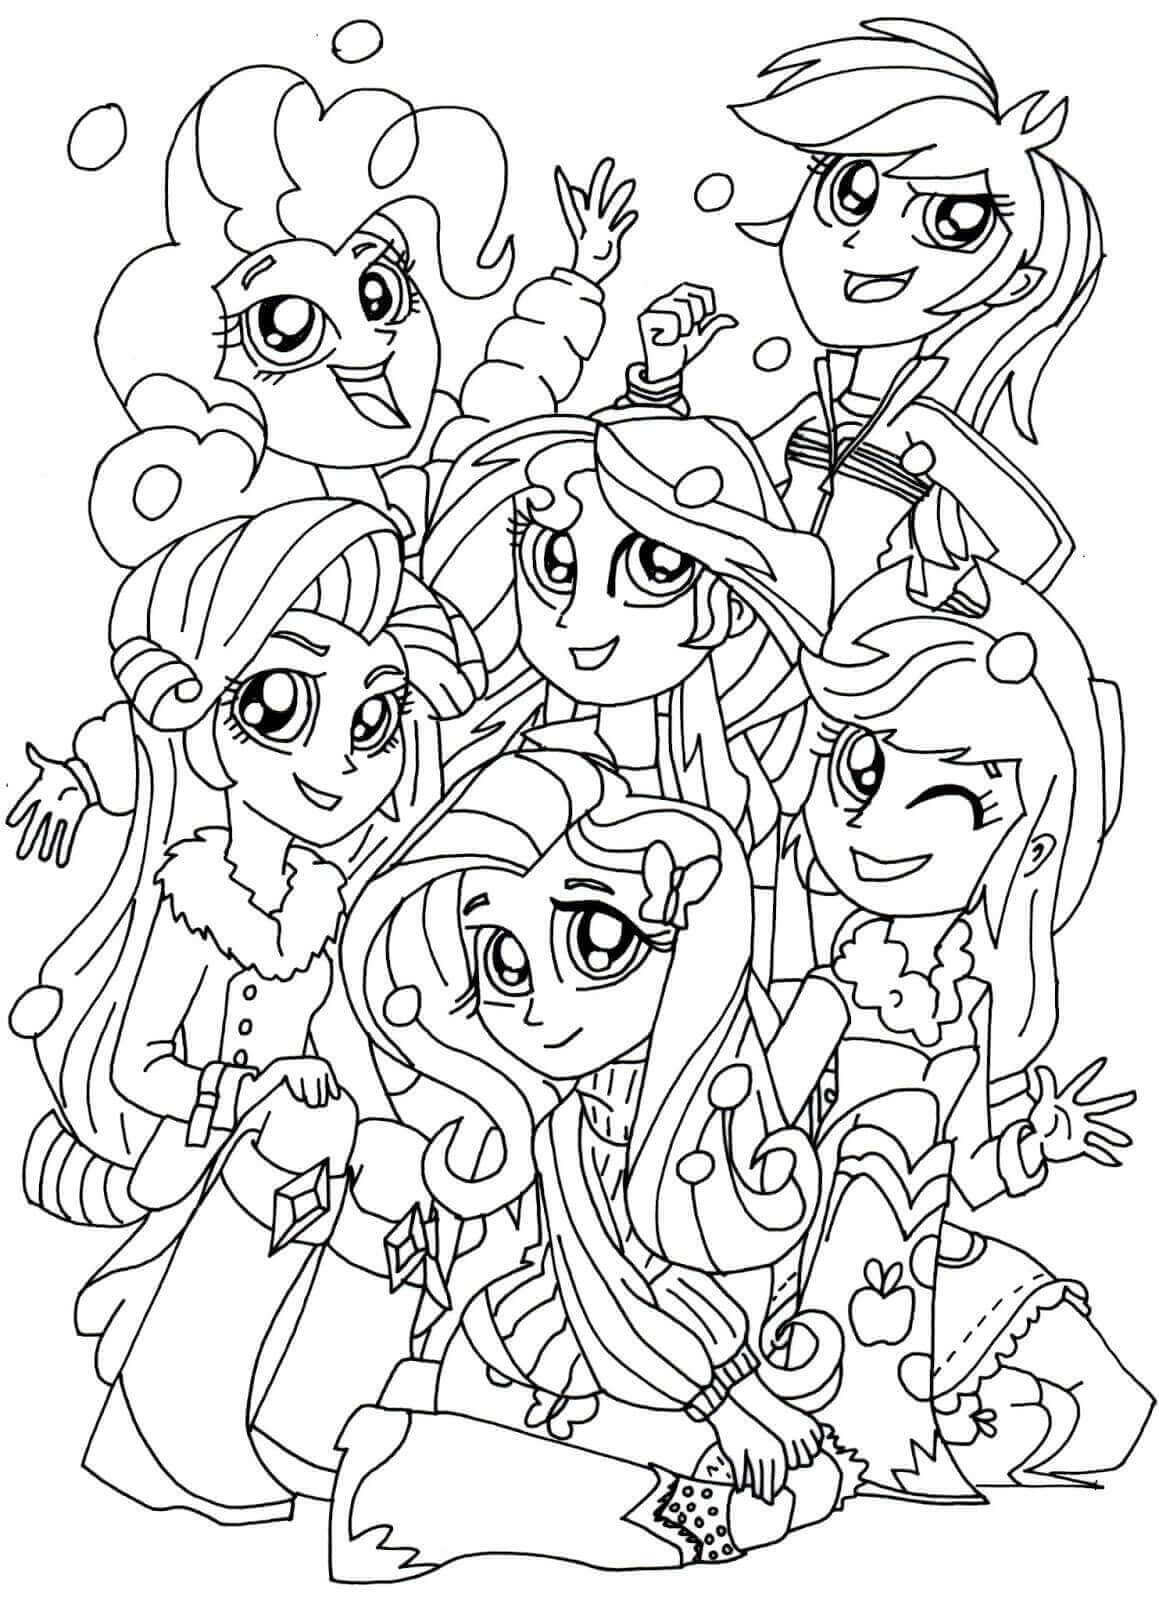 Coloring Book Pages Girls  15 Printable My Little Pony Equestria Girls Coloring Pages